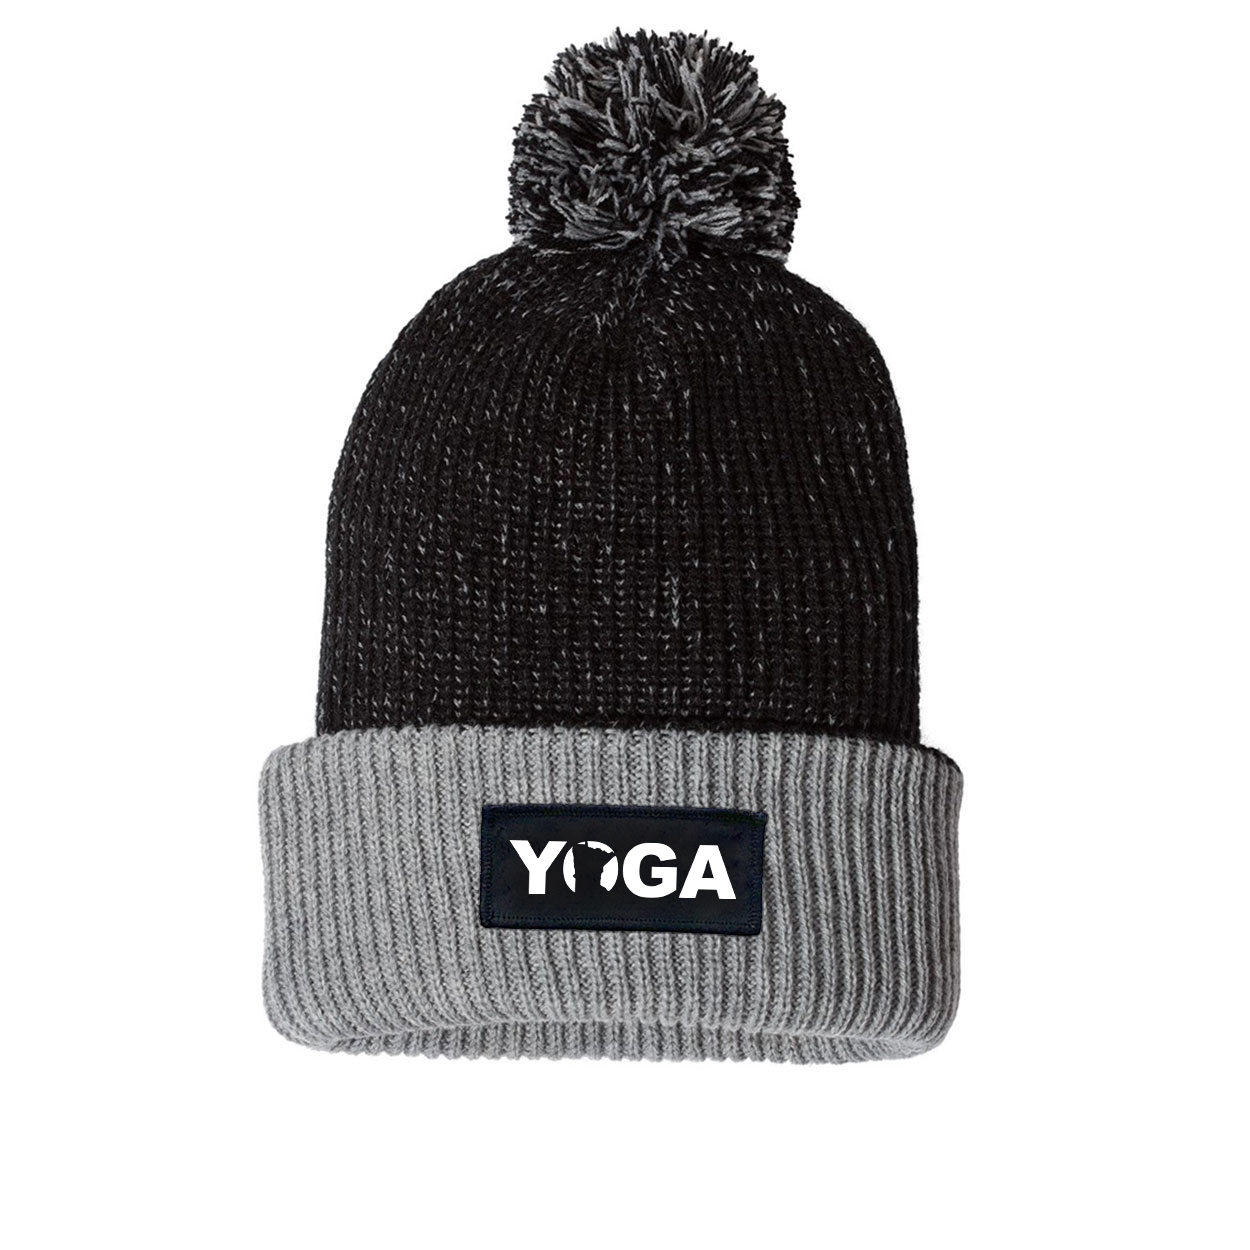 Yoga Minnesota Night Out Woven Patch Roll Up Pom Knit Beanie Black/Gray (White Logo)